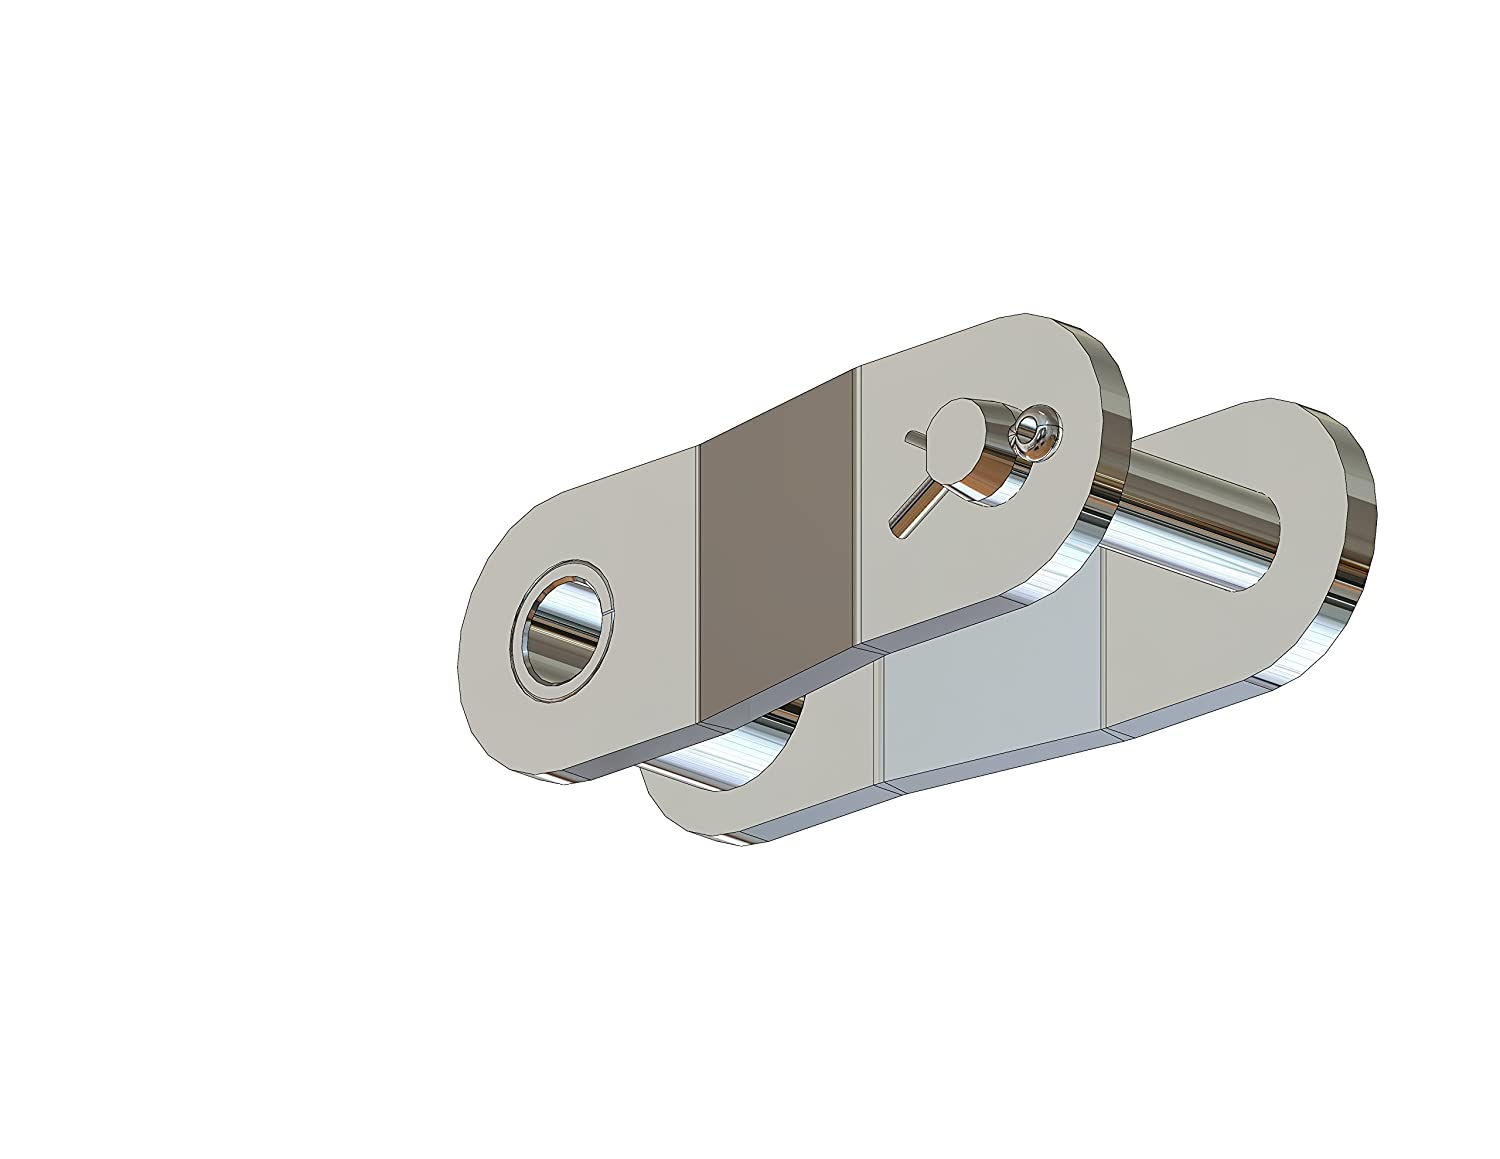 Double Pitch Chain Senqcia Inspire Series C2060SSOL 304 Stainless Steel Offset Link Pack of 5 2.17 Length 1-1//2 Pitch